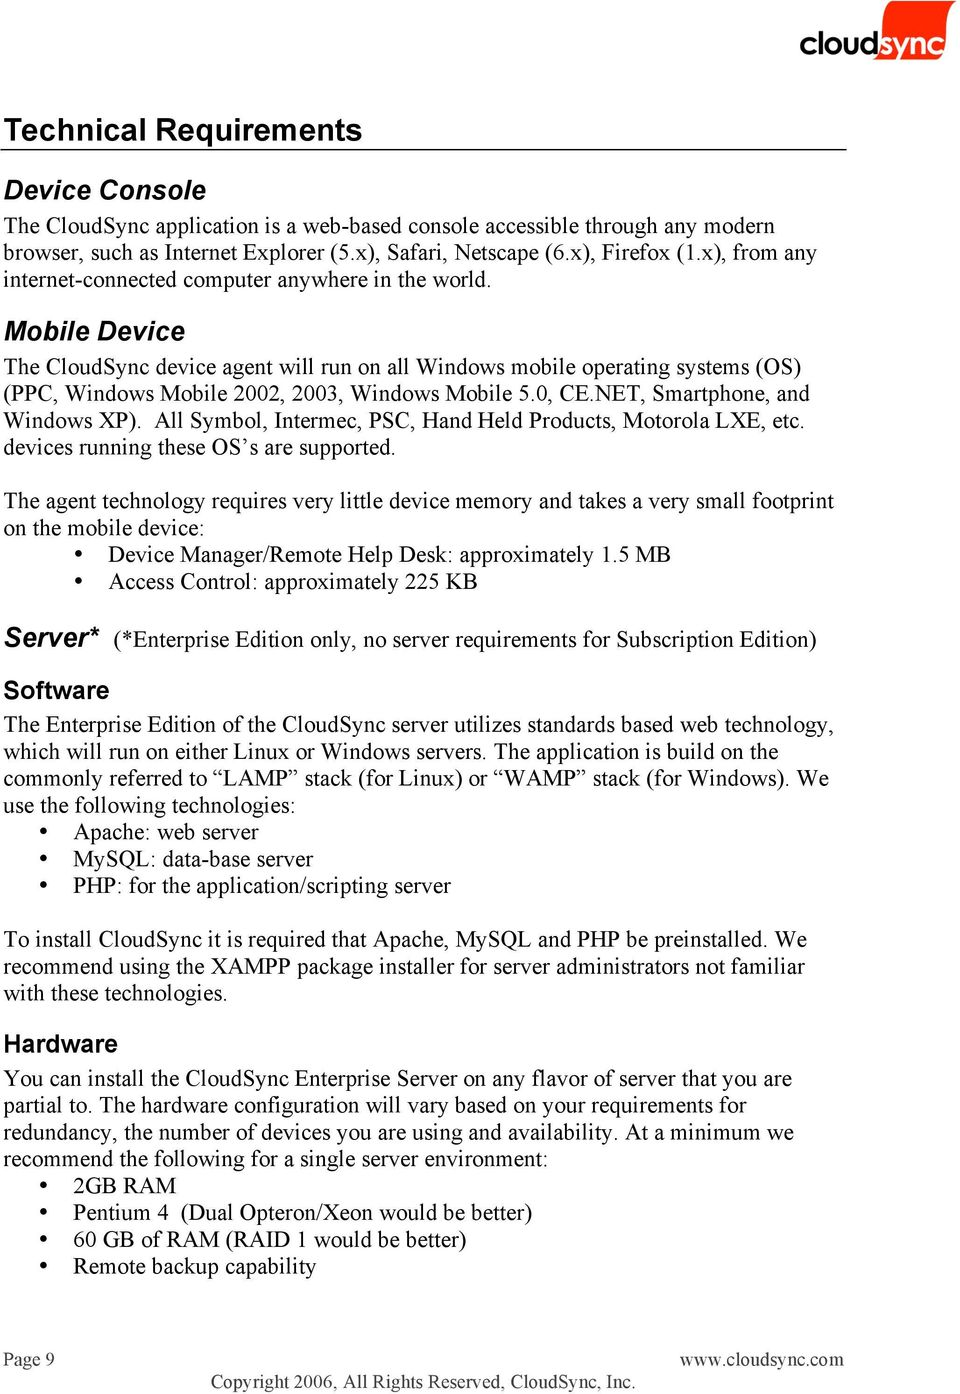 Mobile Device The CloudSync device agent will run on all Windows mobile operating systems (OS) (PPC, Windows Mobile 2002, 2003, Windows Mobile 5.0, CE.NET, Smartphone, and Windows XP).